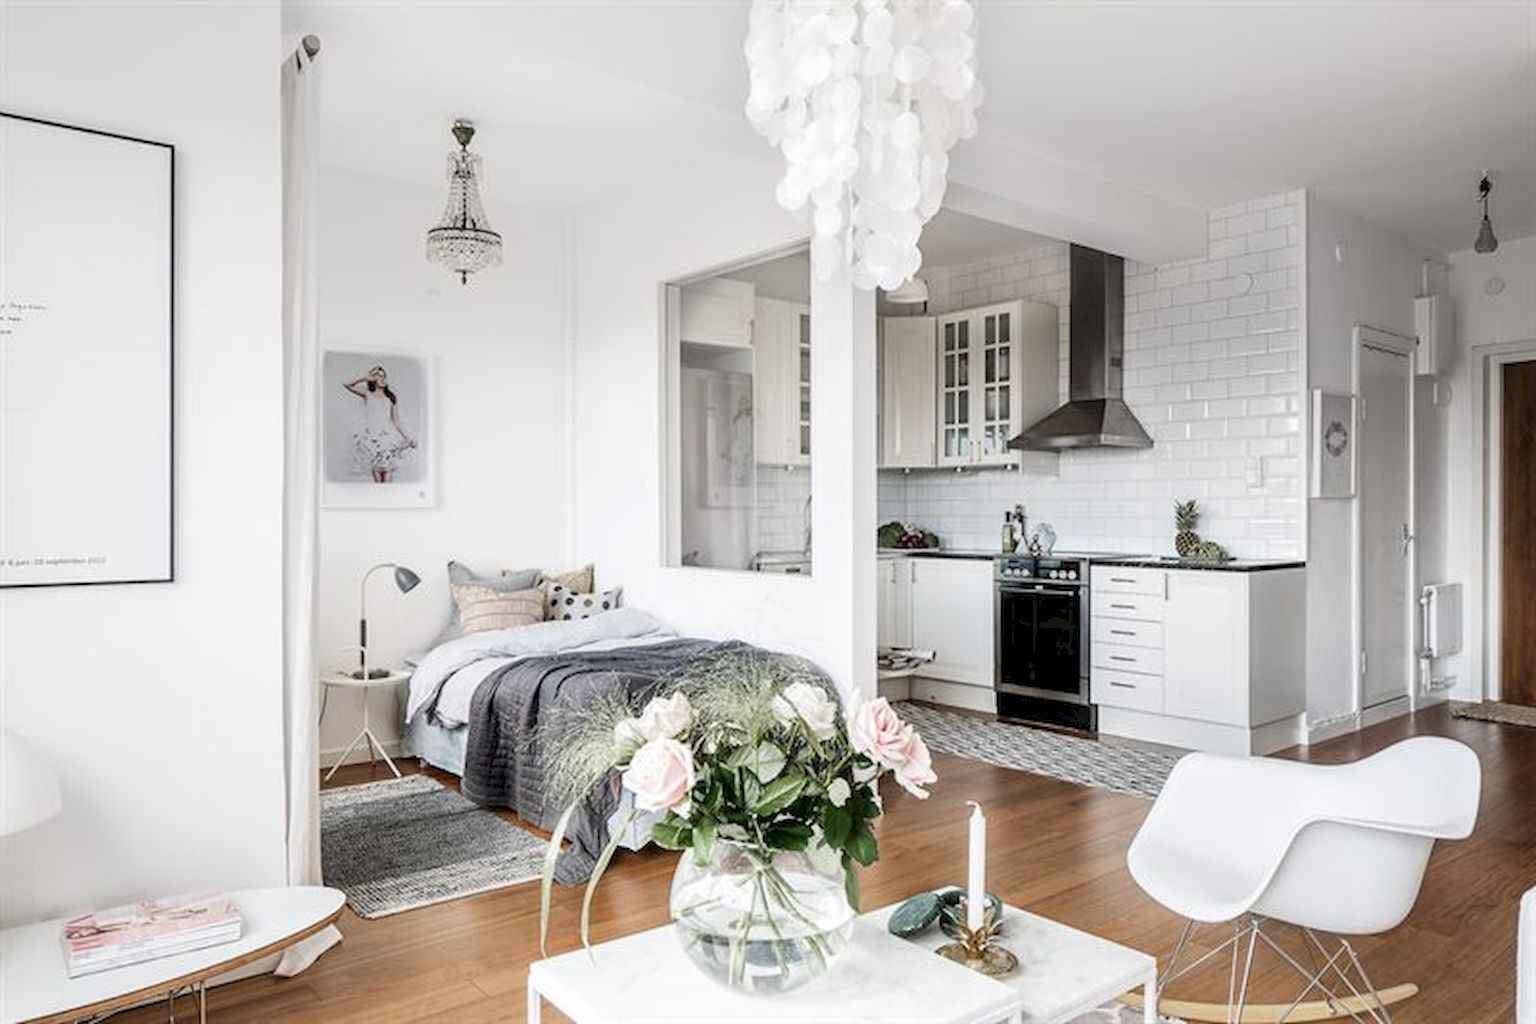 Cool small apartment decorating ideas on a budget (4)